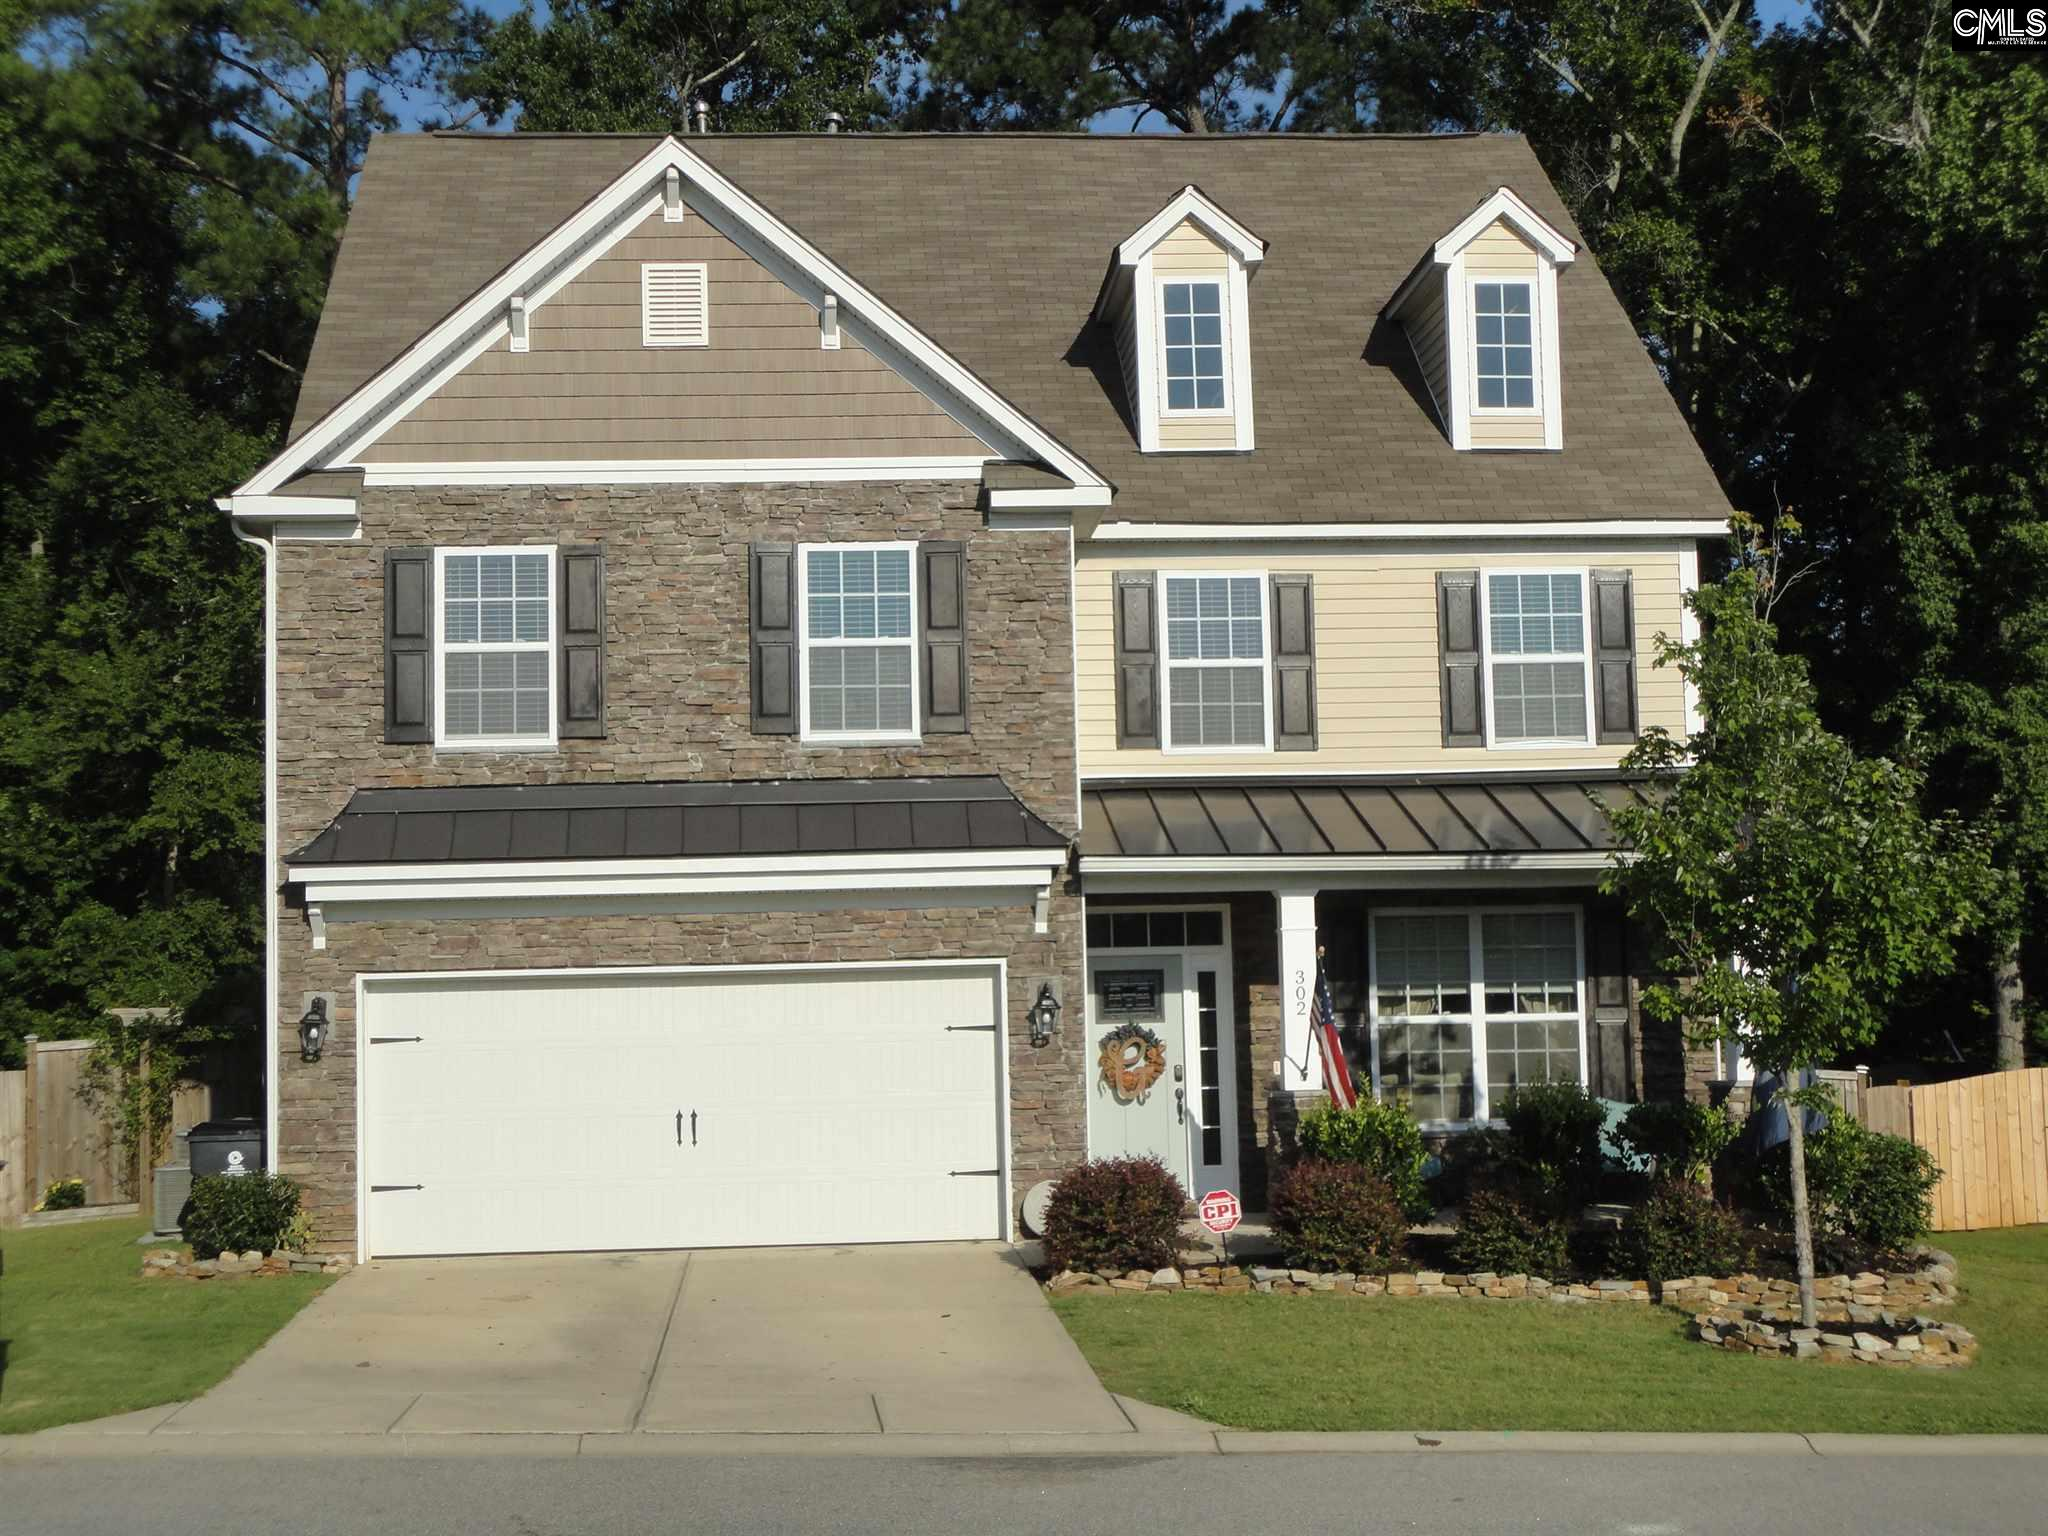 302 Welsummer Lexington, SC 29072